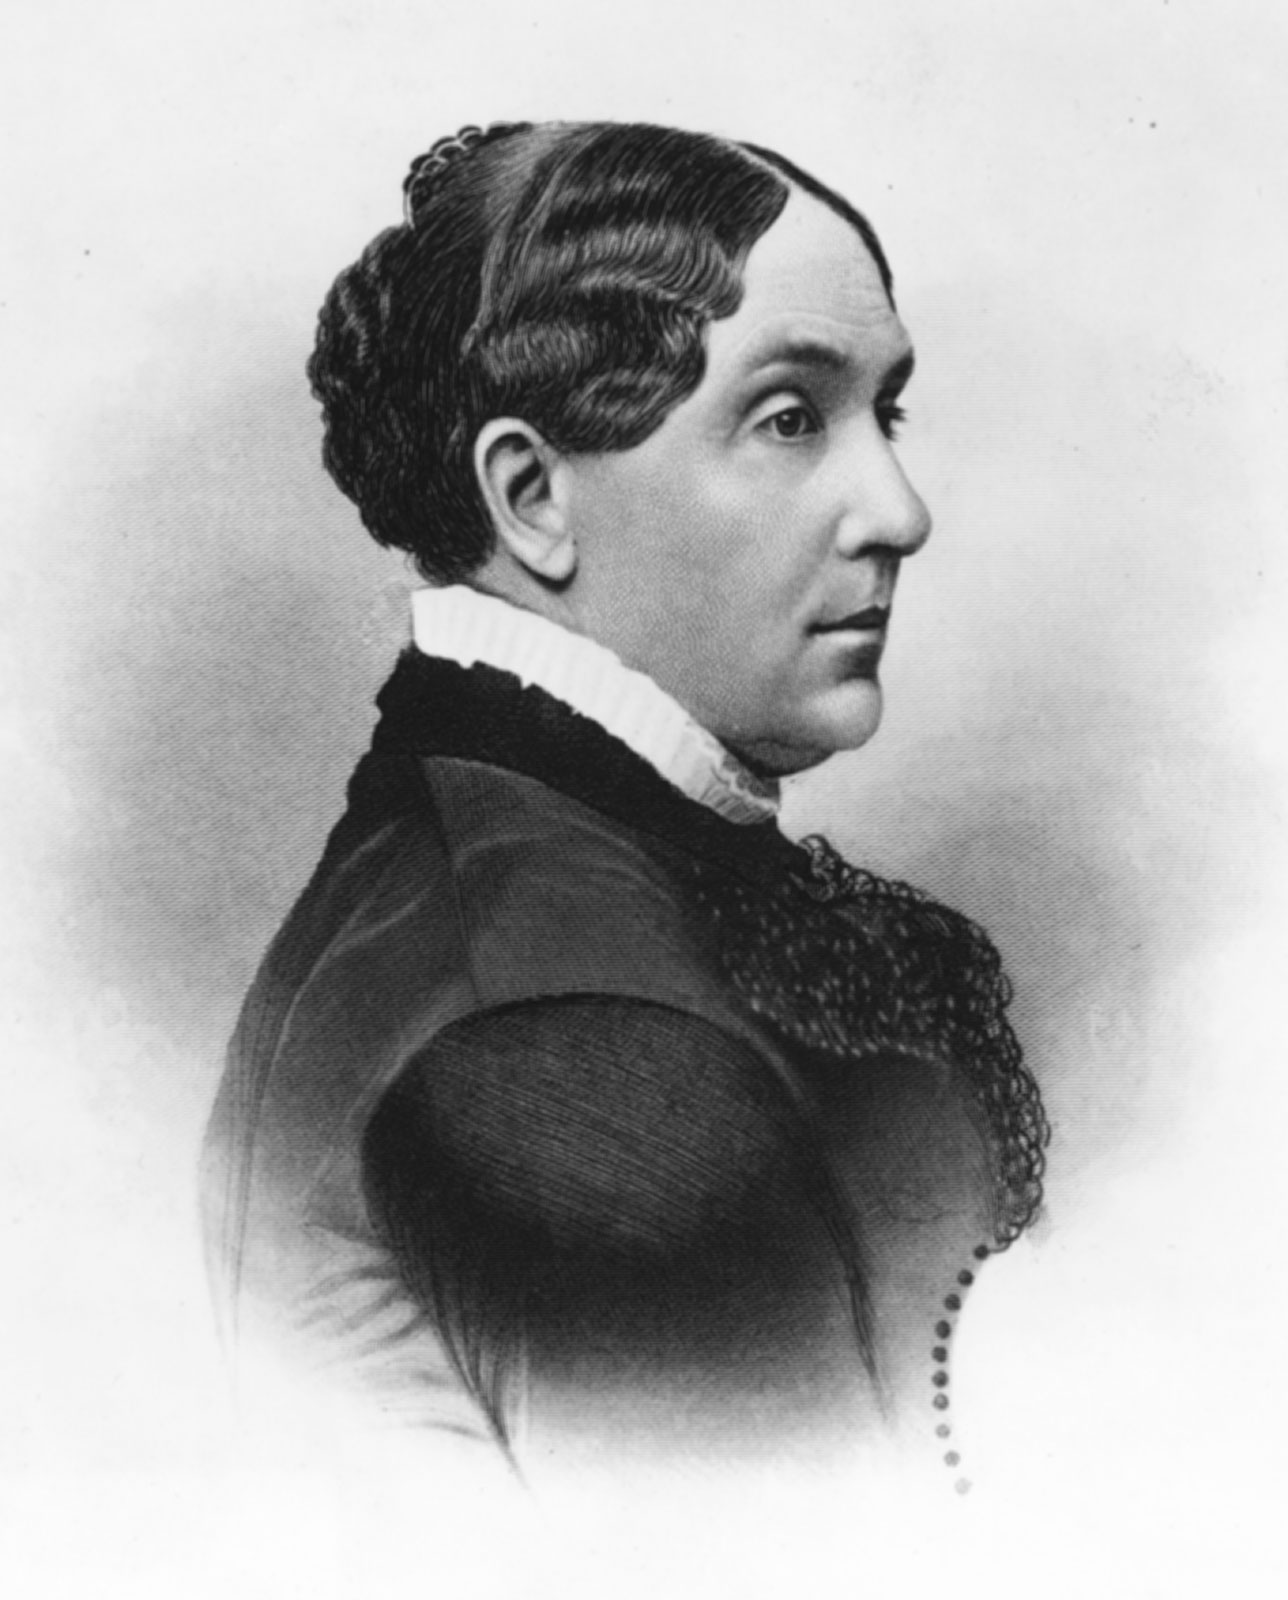 Suffragist and journalist Abigail Scott Duniway